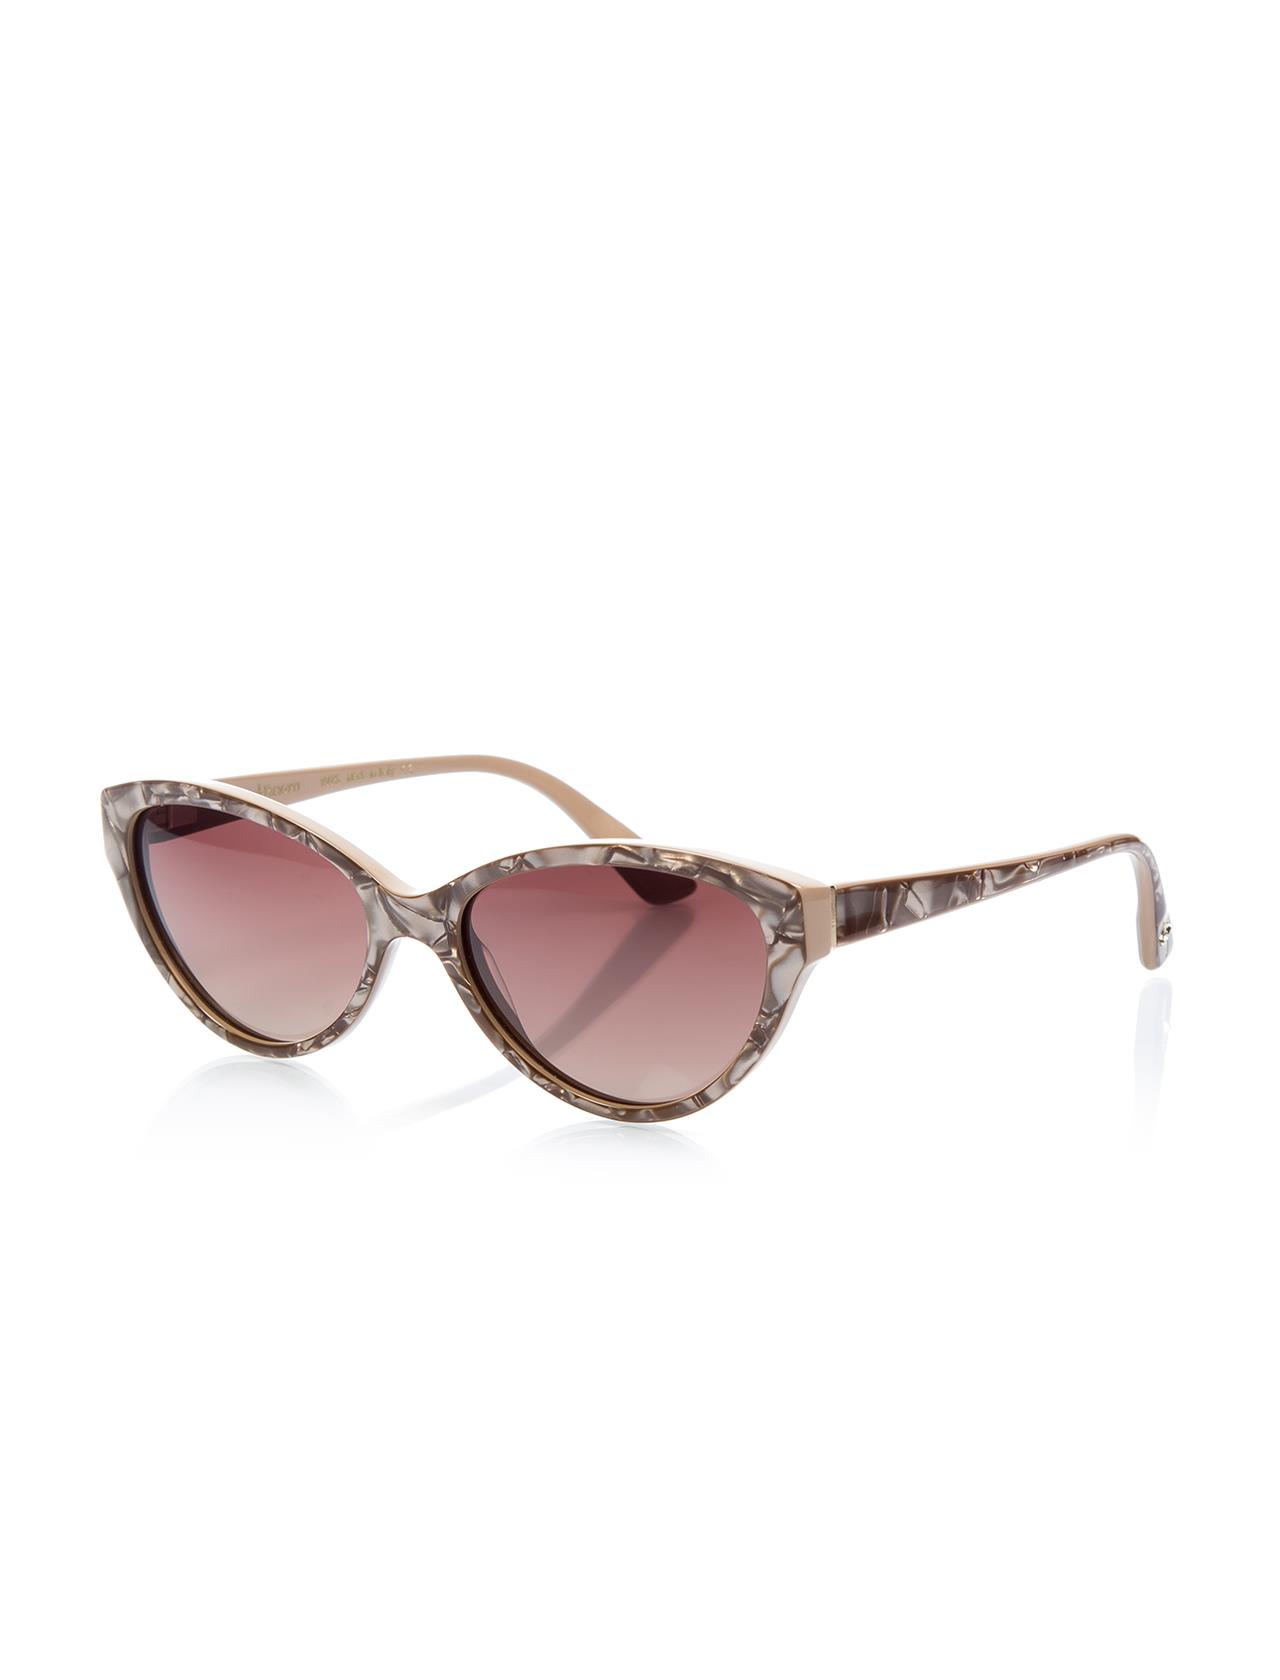 Women's sunglasses cp 114 03 bone Brown unspecified 55-cesare paciotti